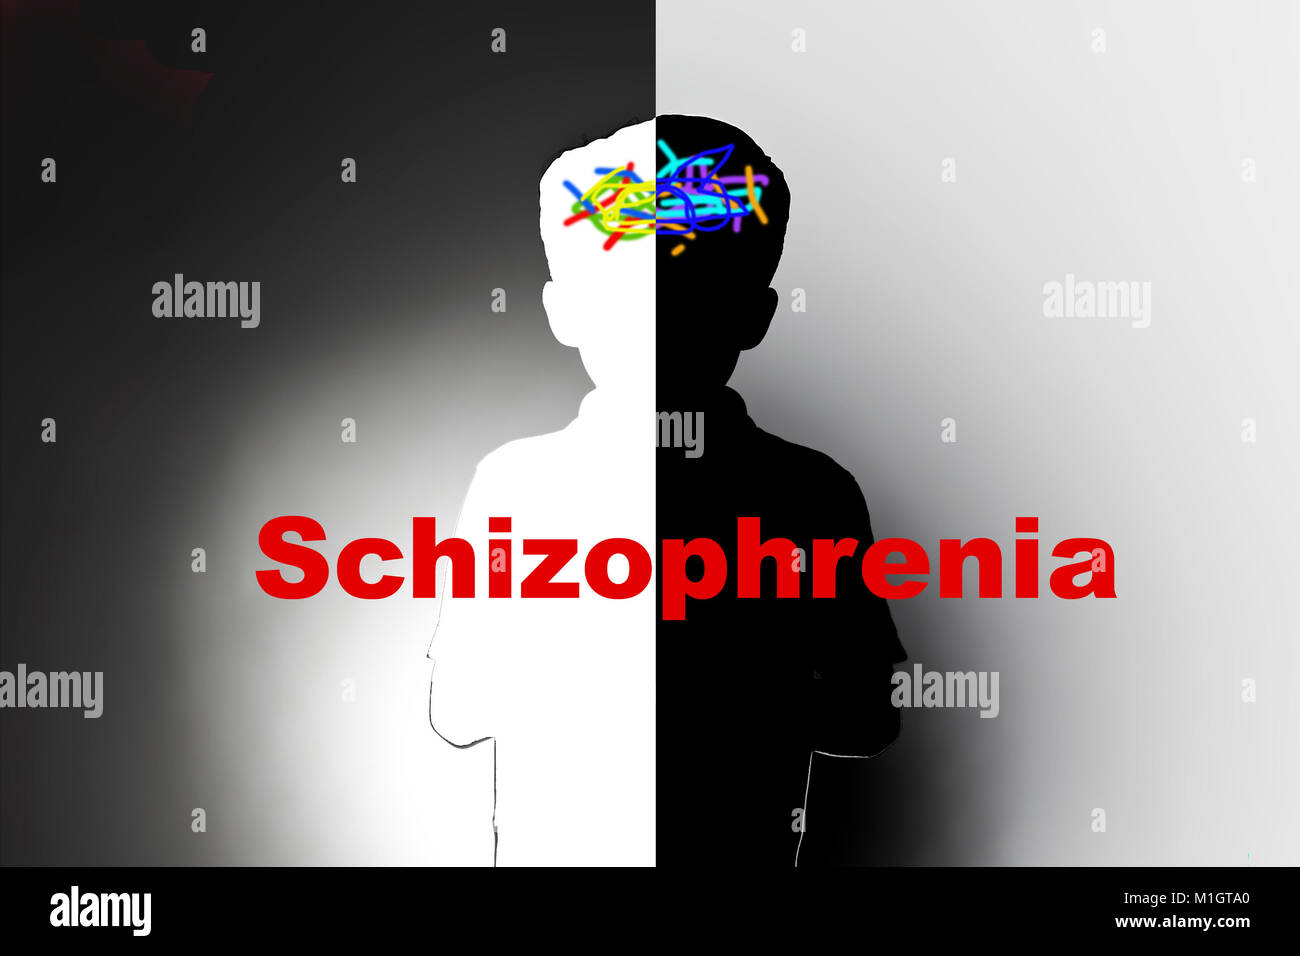 childhood schizophrenia, safeguarding children and social care, mental illness - Stock Image